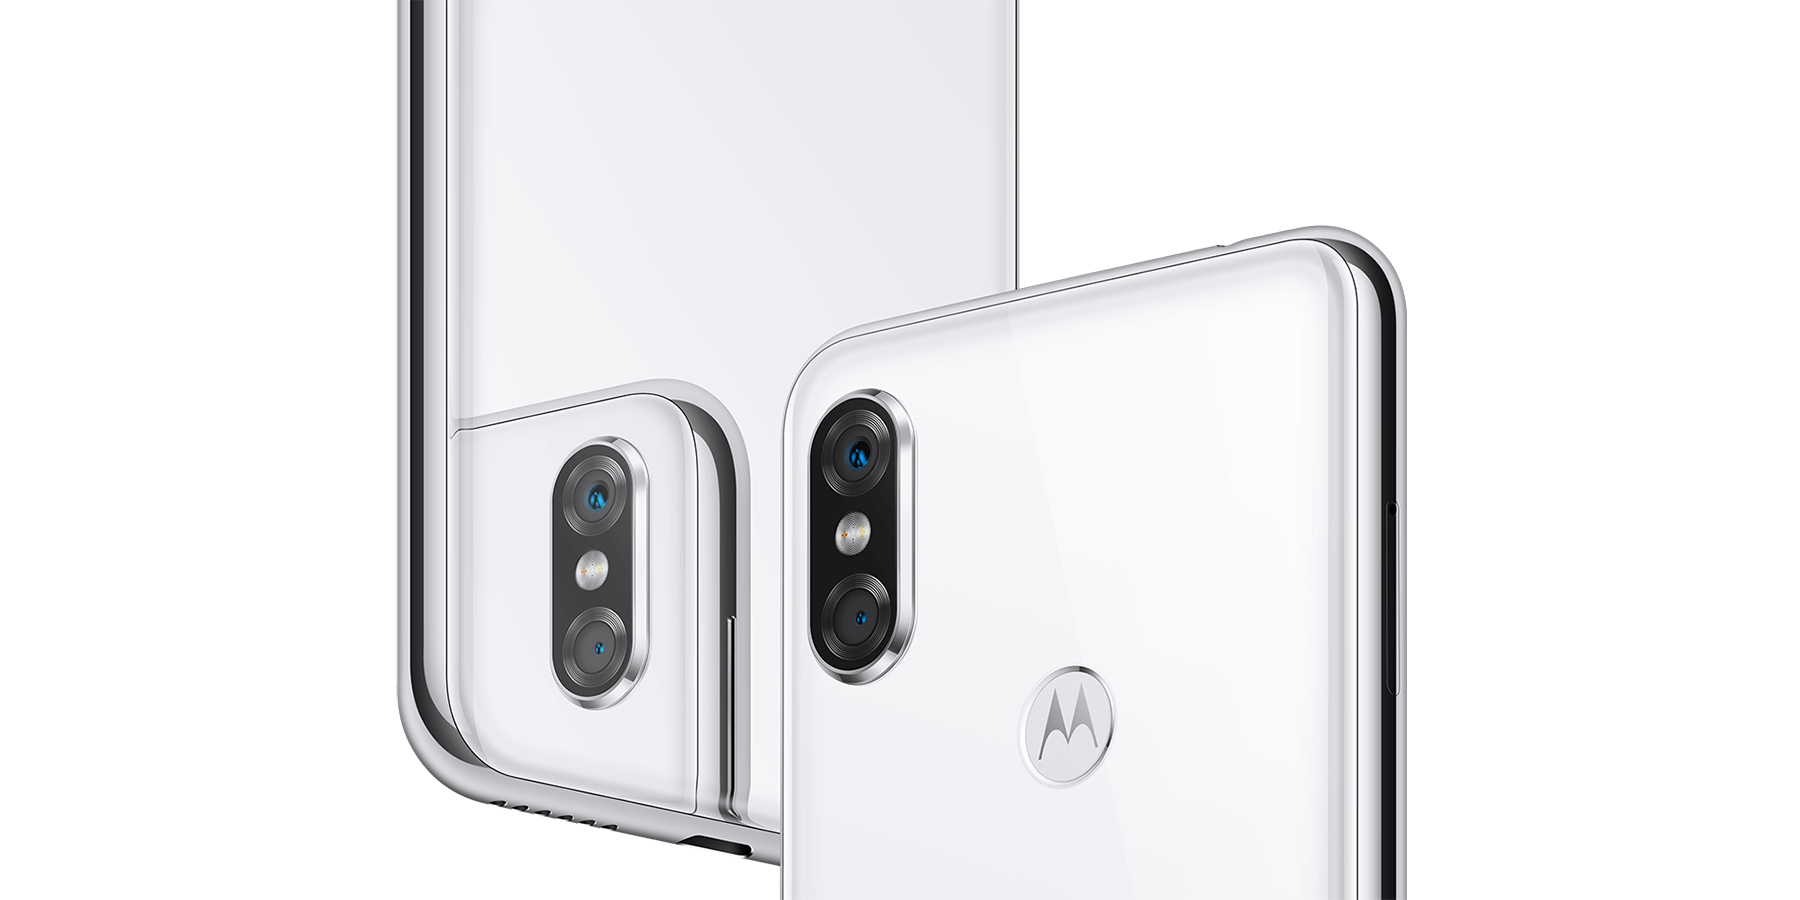 motorola p30 goes official for china w thin bezels huge notch and iphone x design